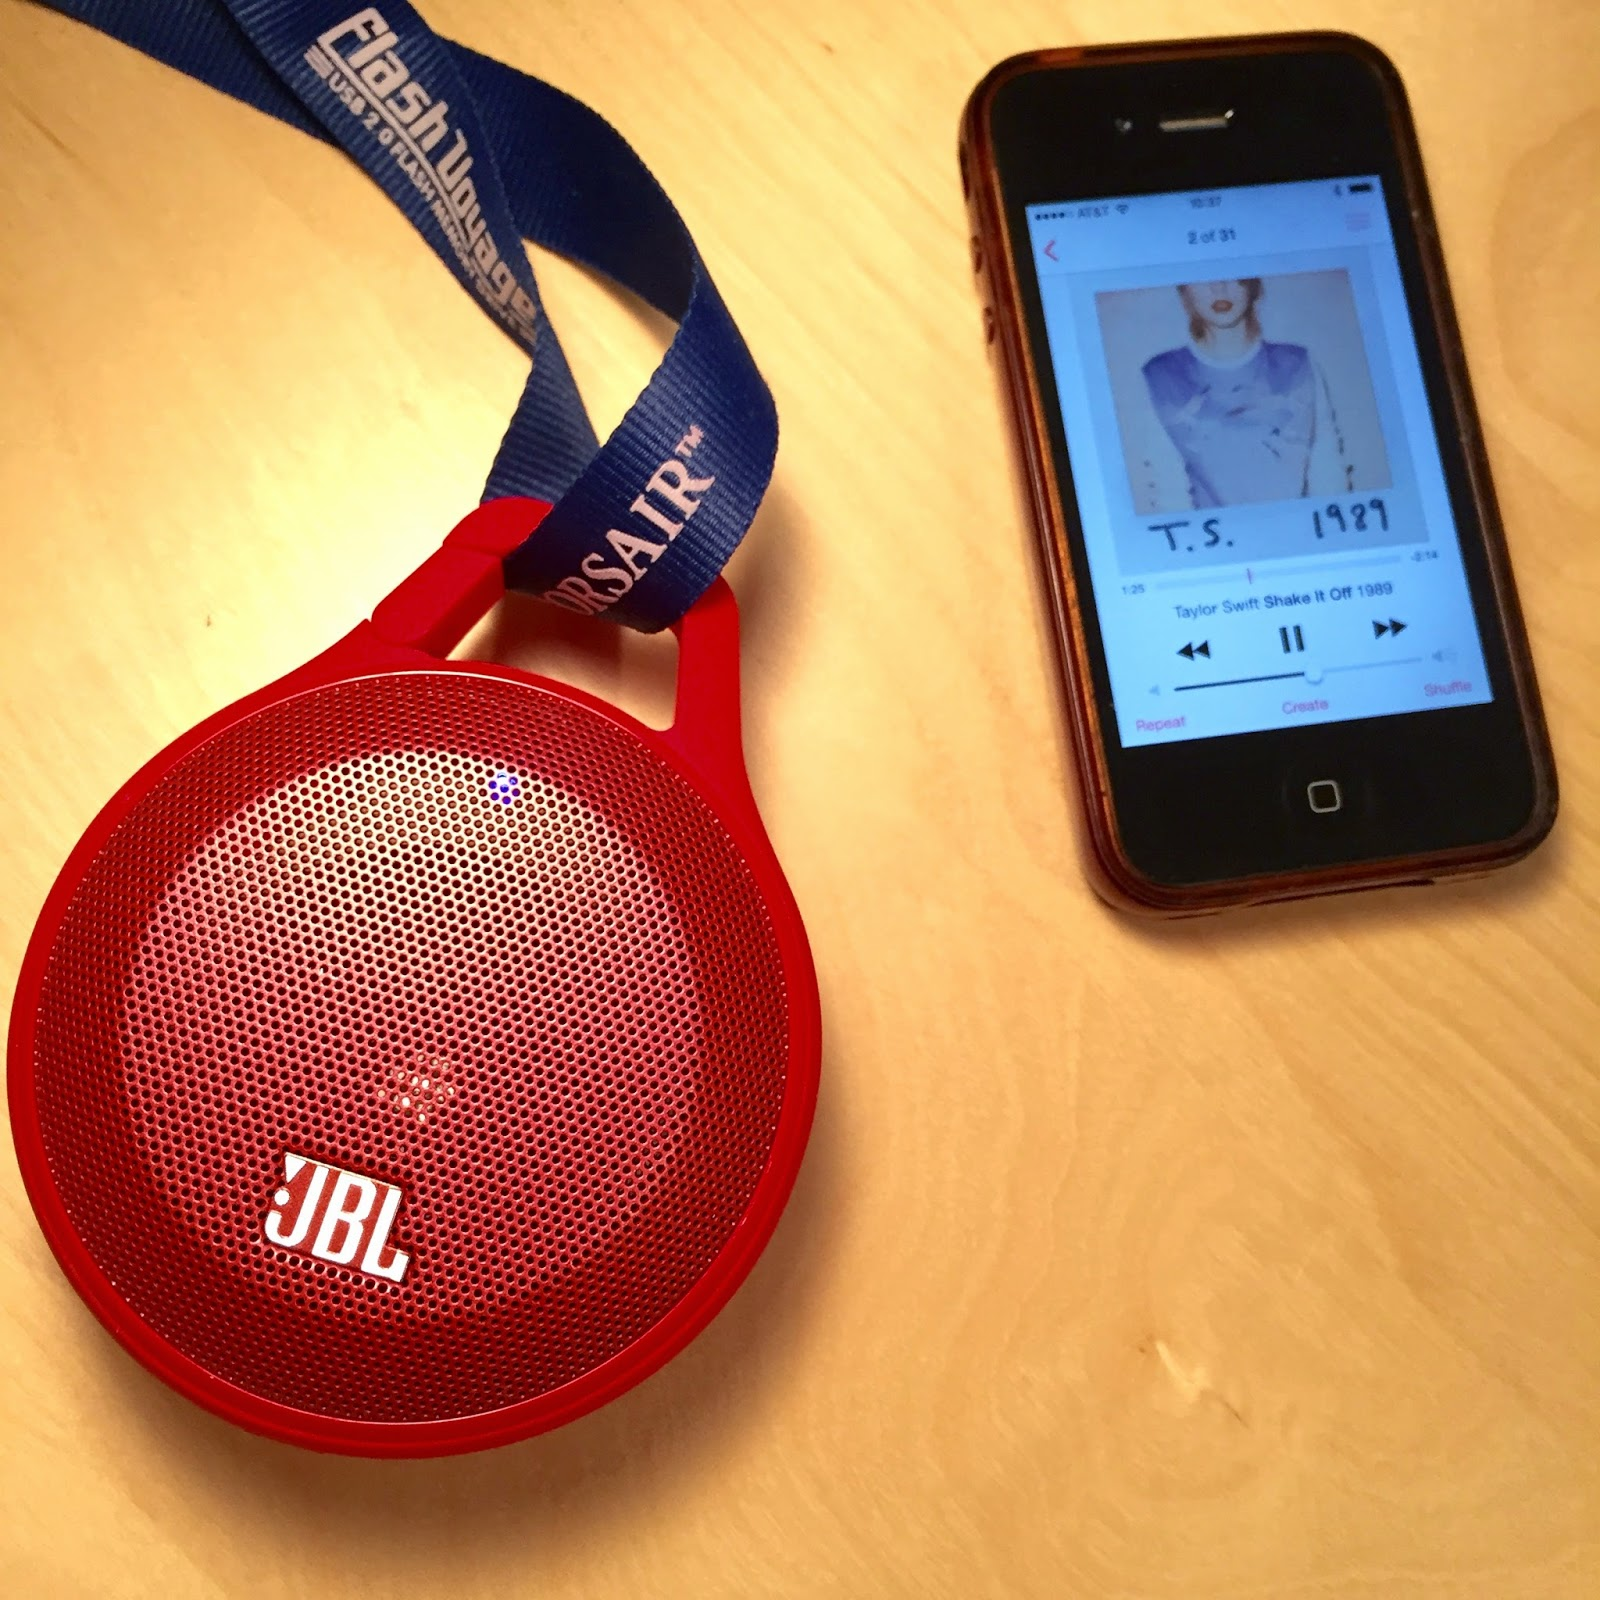 JBL clip speaker built-in carabiner